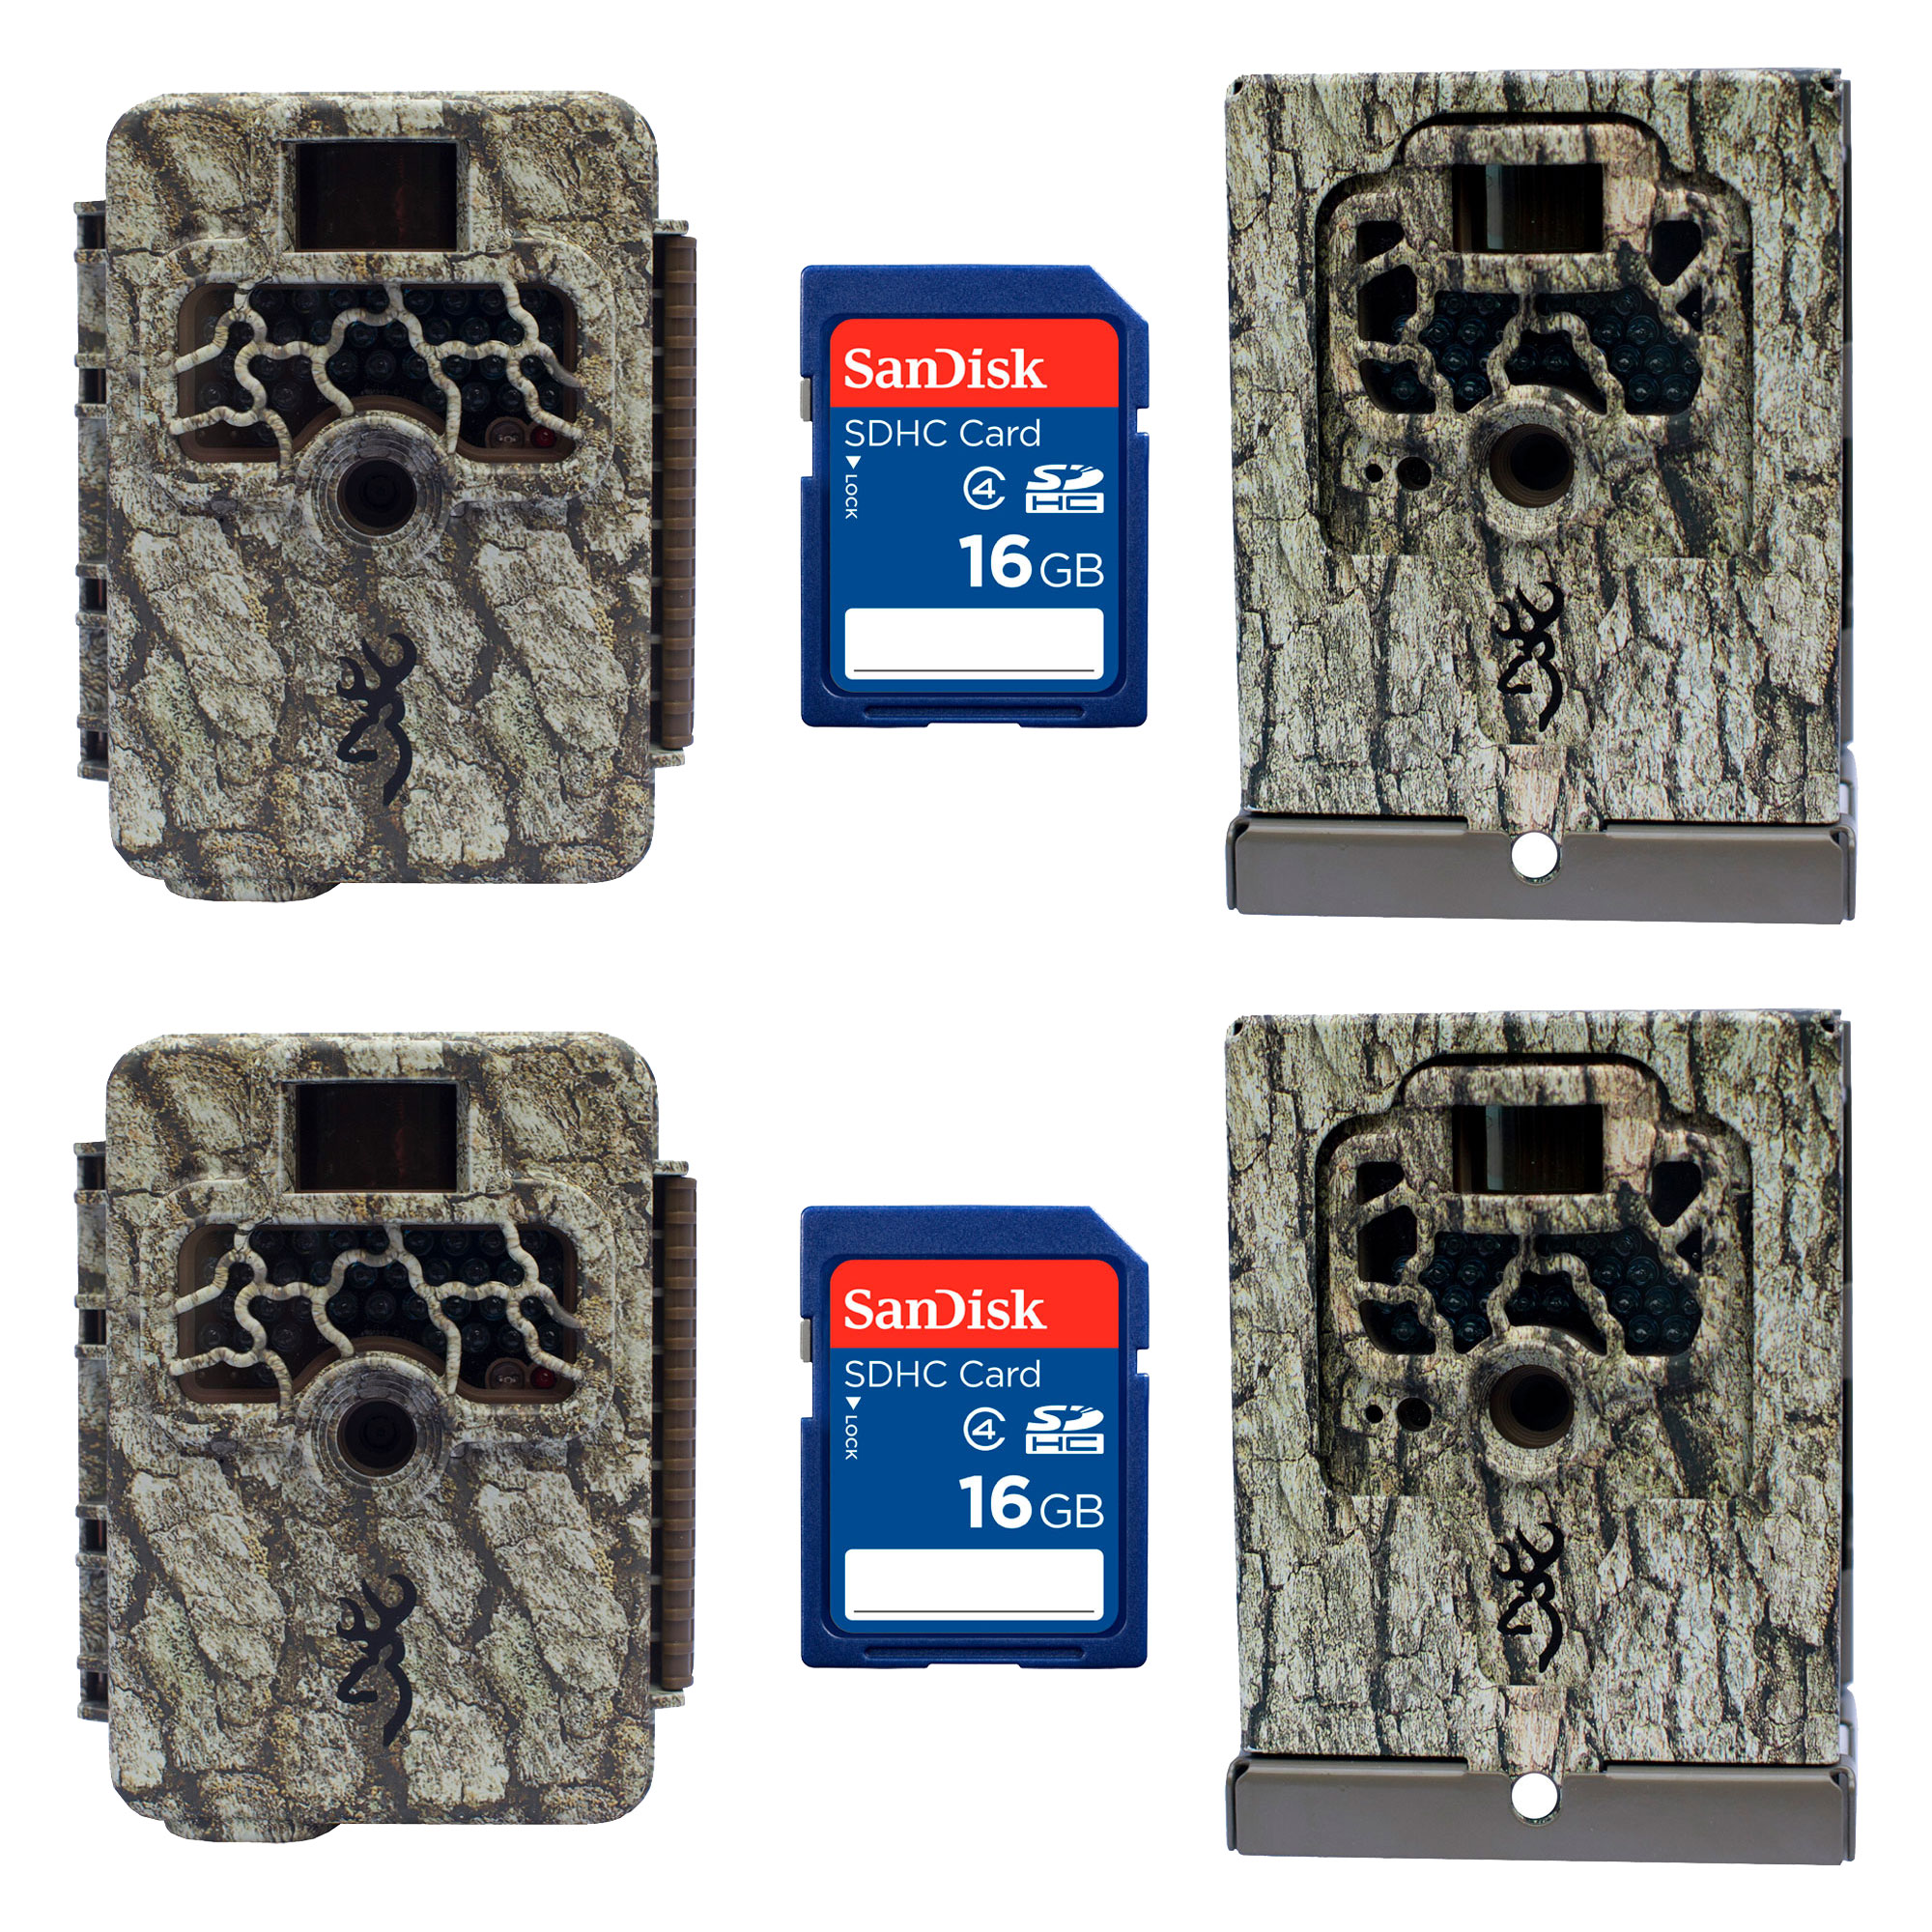 Browning Trail Cameras Command Ops Game Camera, Pair + Security Boxes, SD Cards by Browning Trail Cameras